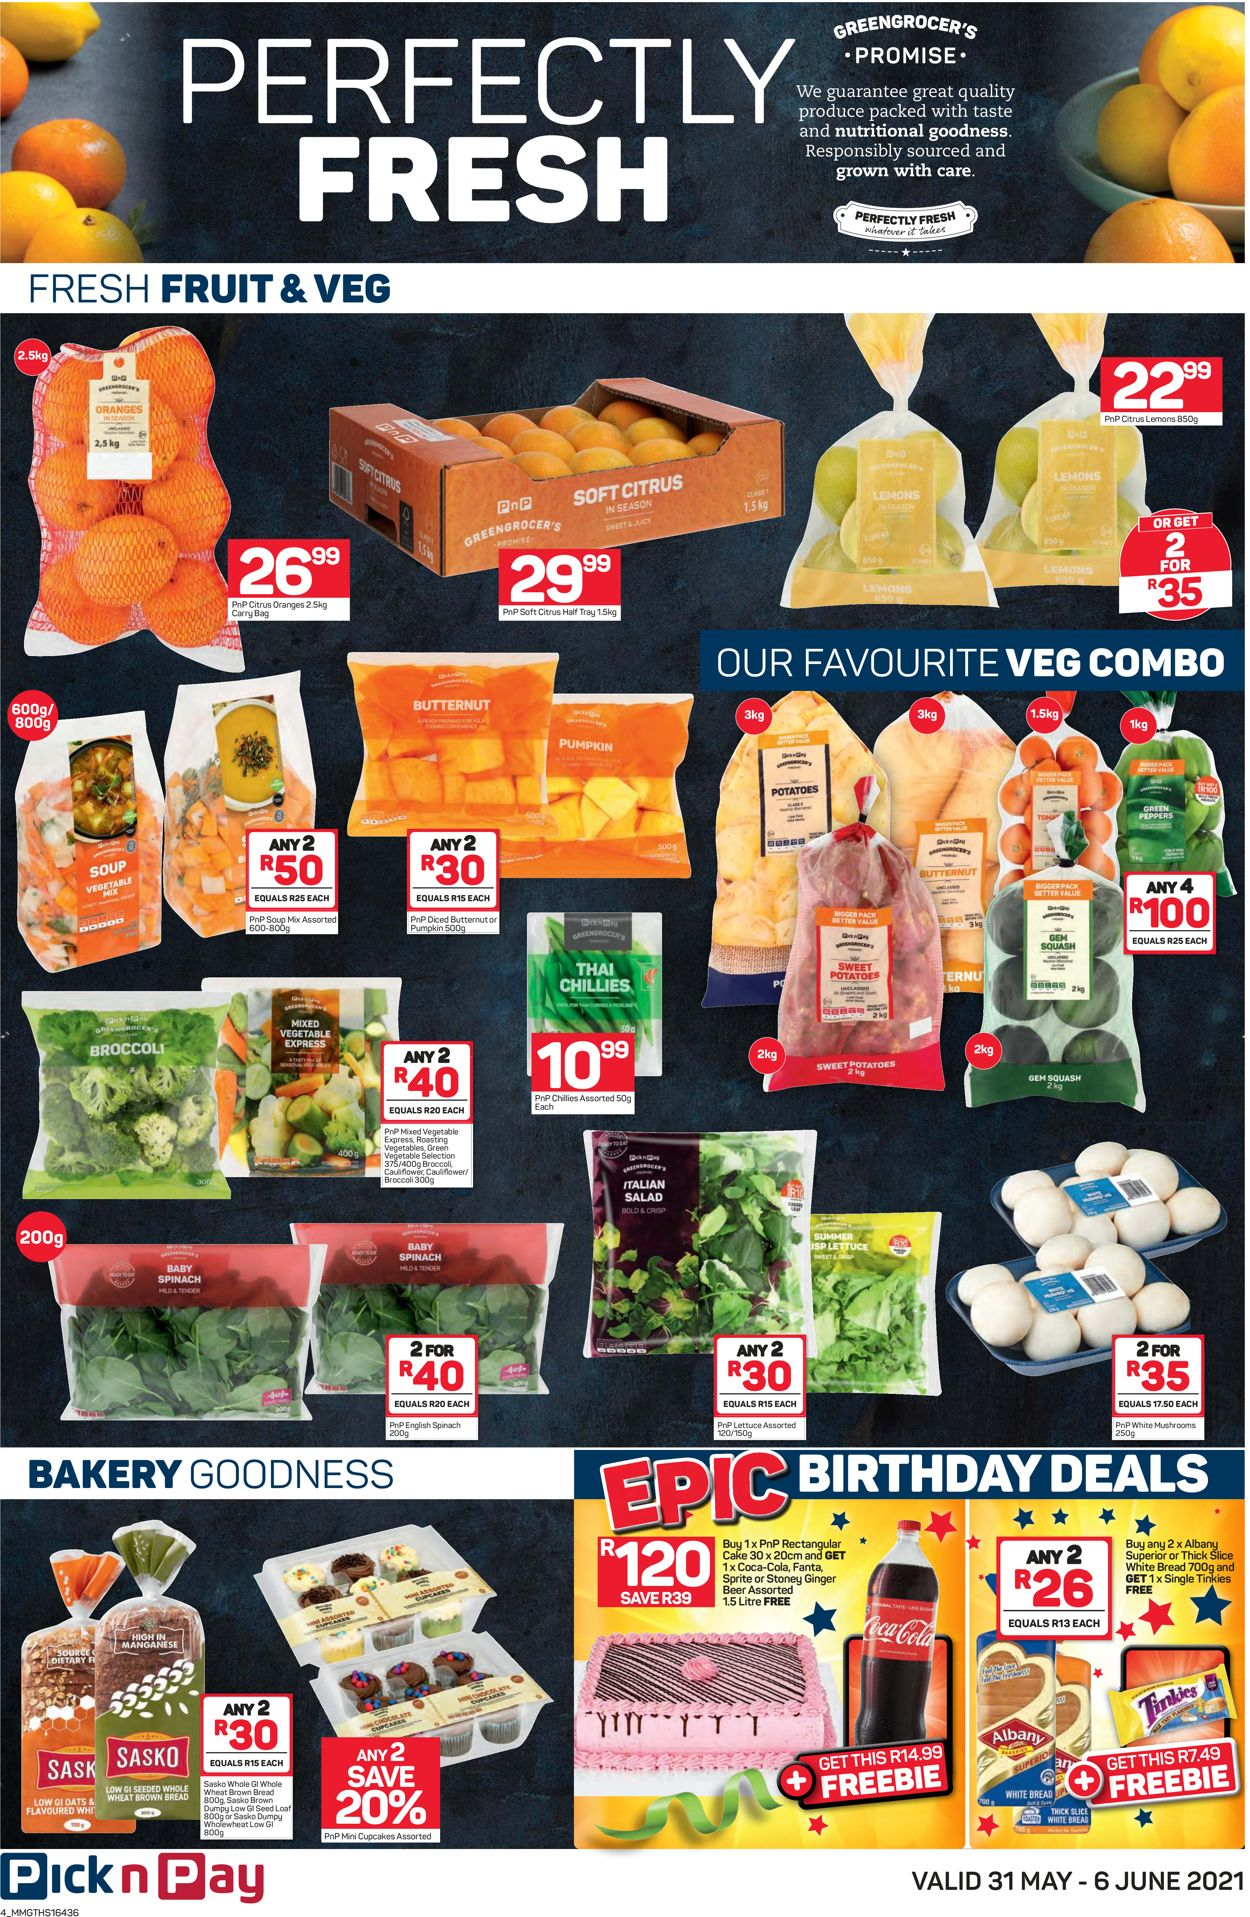 Pick n Pay Catalogue - 2021/05/31-2021/06/06 (Page 4)